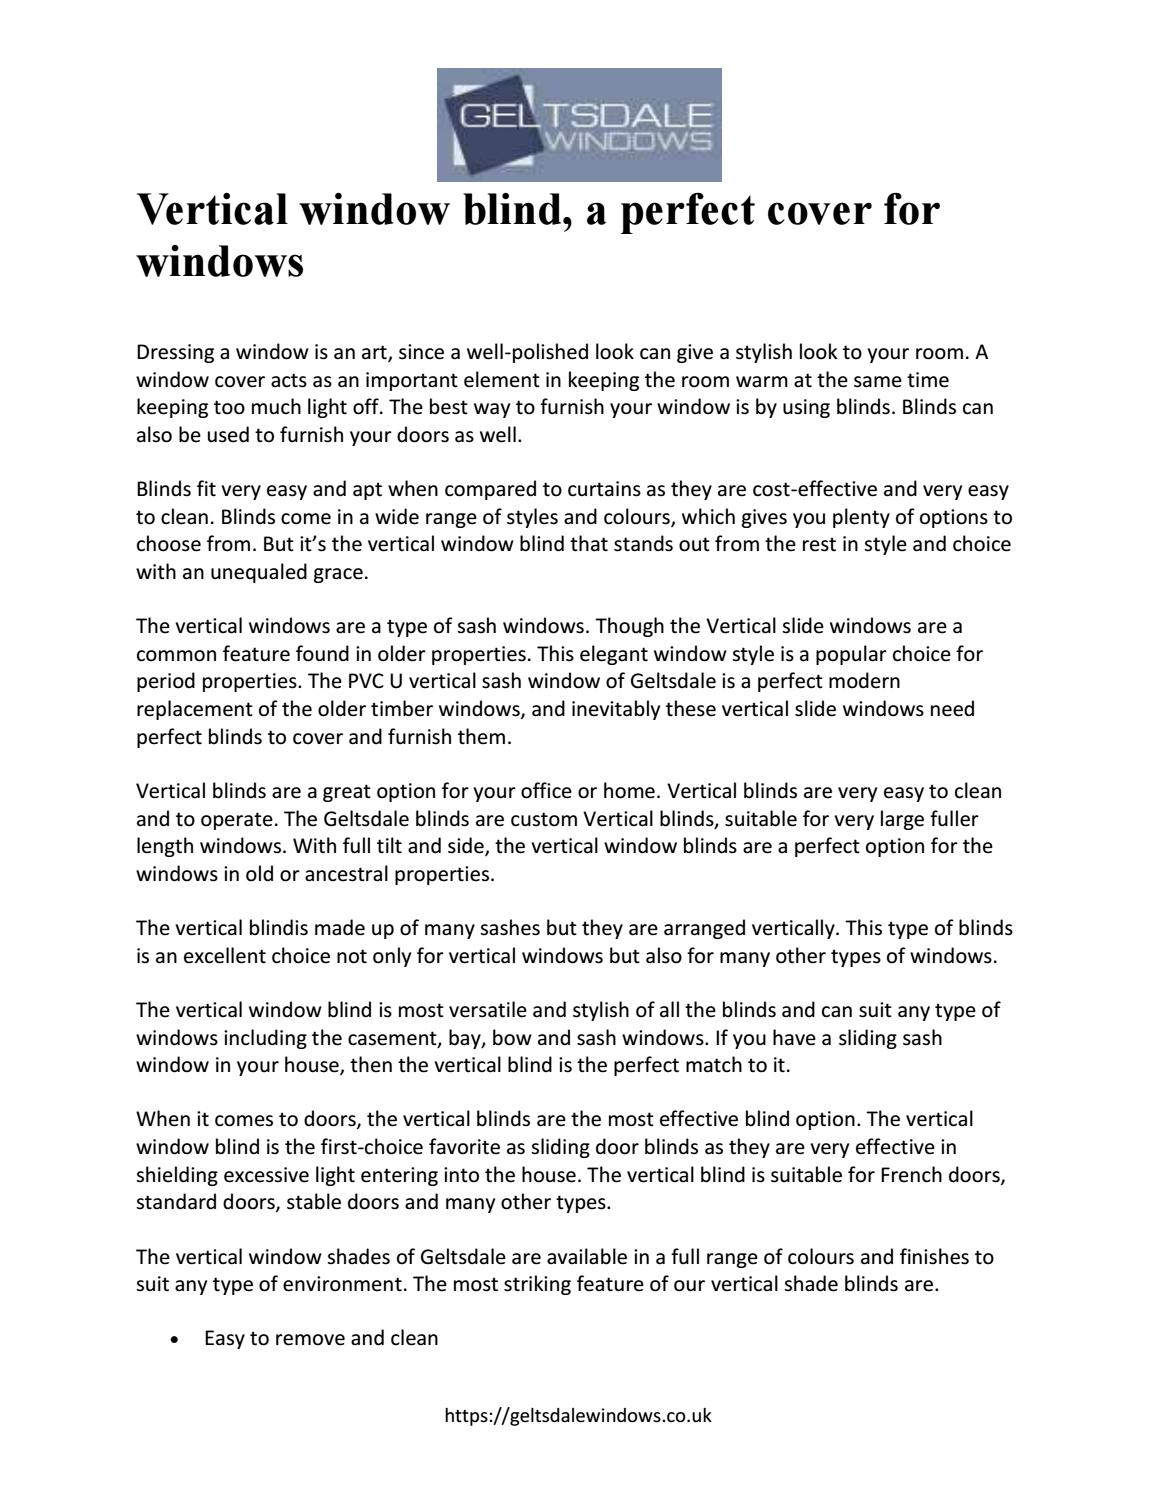 Vertical Window Blind A Perfect Cover